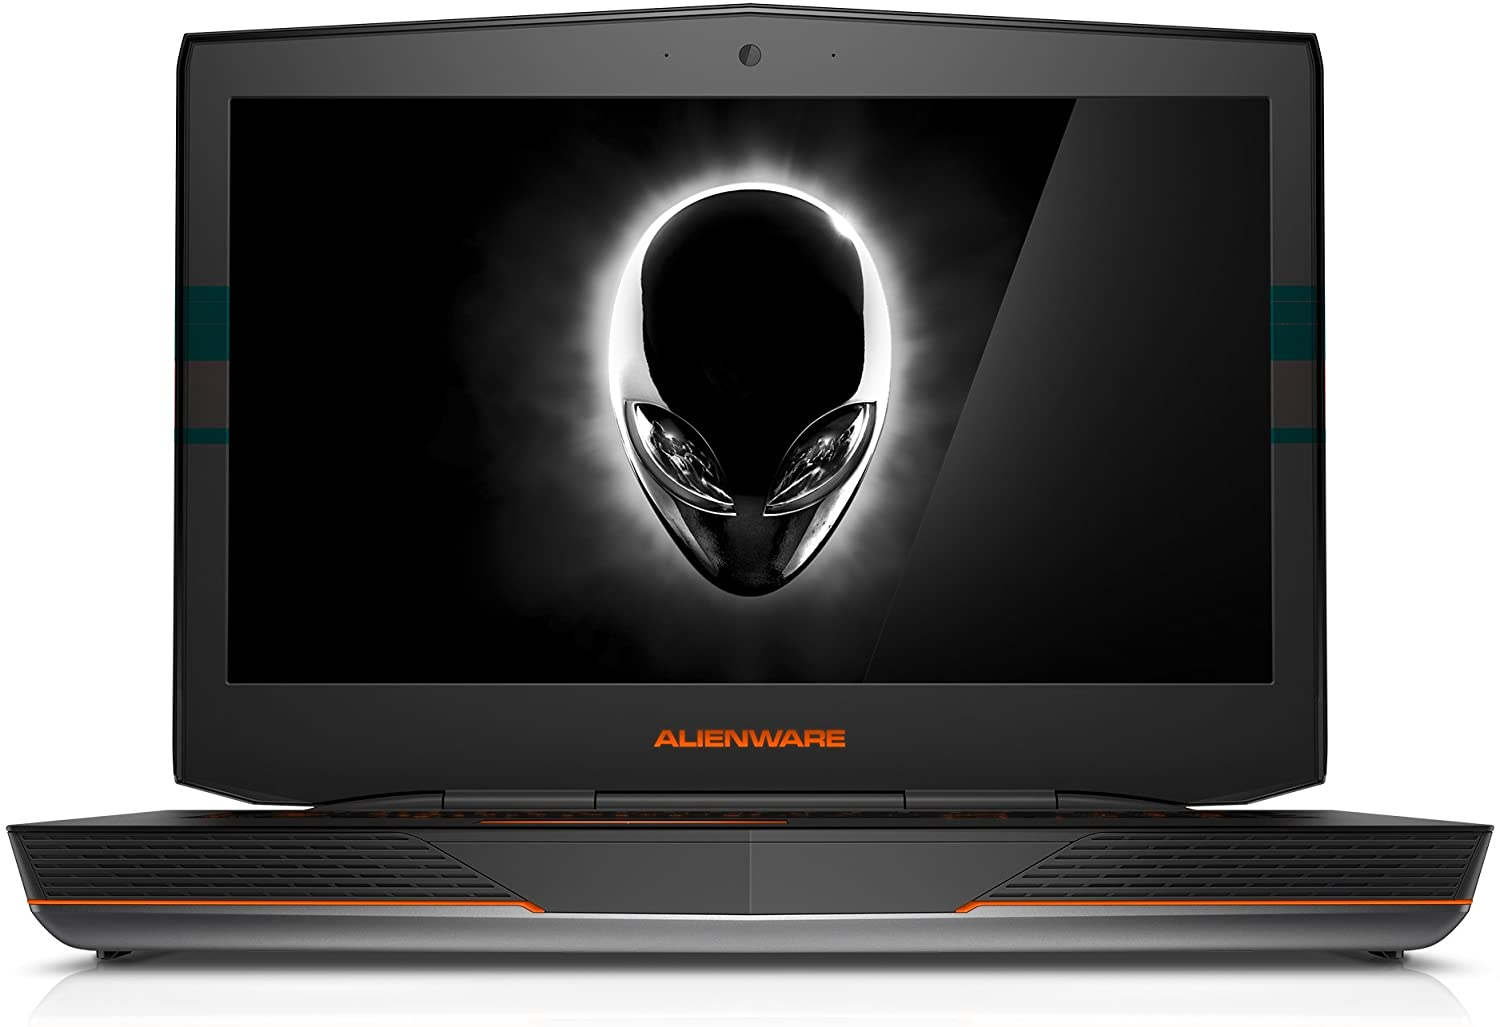 Alienware ALW18-3002sLV 18-Inch Laptop (3.4 GHz Intel Core i7-4700MQ Processor, 8GB DDR3L, 750GB HDD, Dual NVIDIA GeForce GTX 770M 3GB GDDR5, Windows 7 Home Premium) Silver-Anodized Aluminum [Discontinued By Manufacturer]